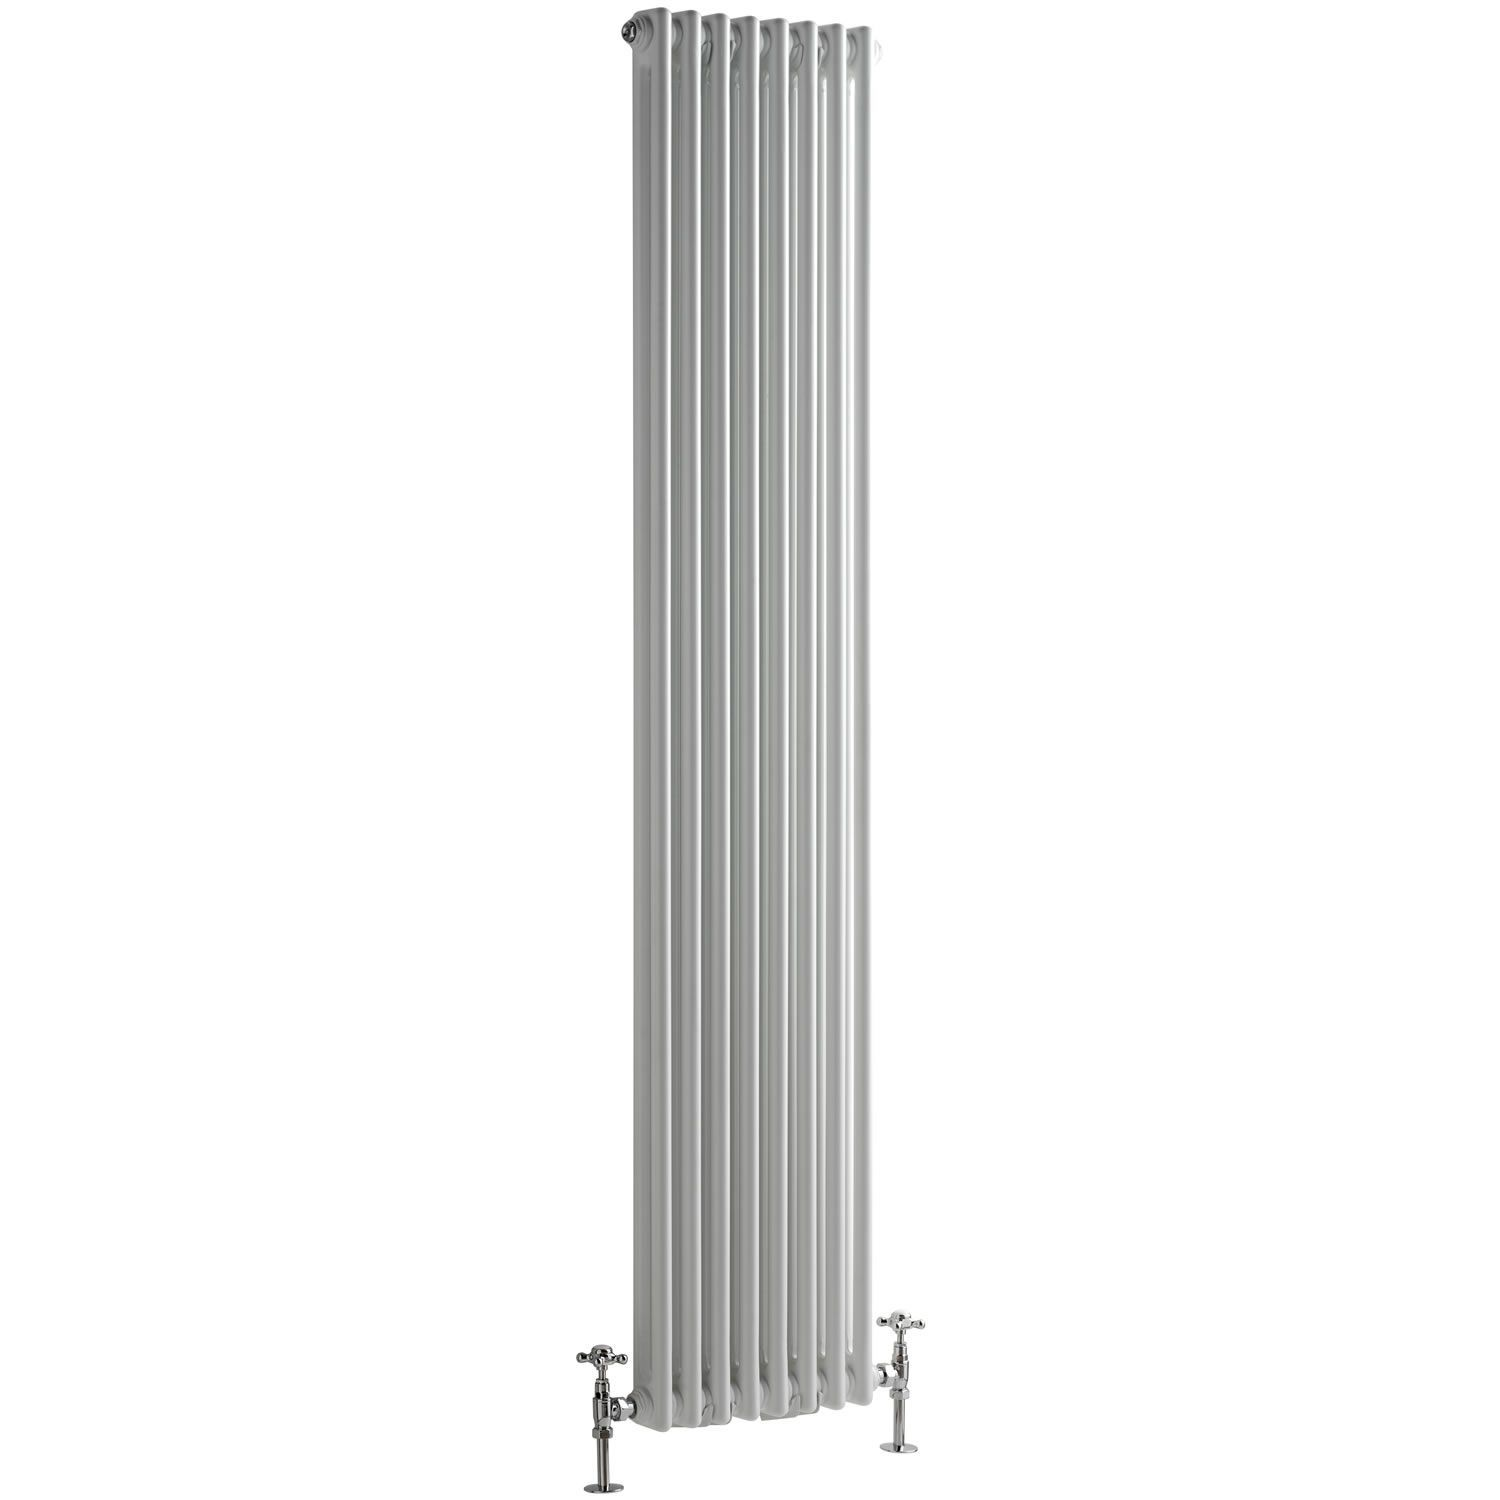 "Regent - White Vertical 2-Column Traditional Cast-Iron Style Radiator - 70.75"" x 15"""